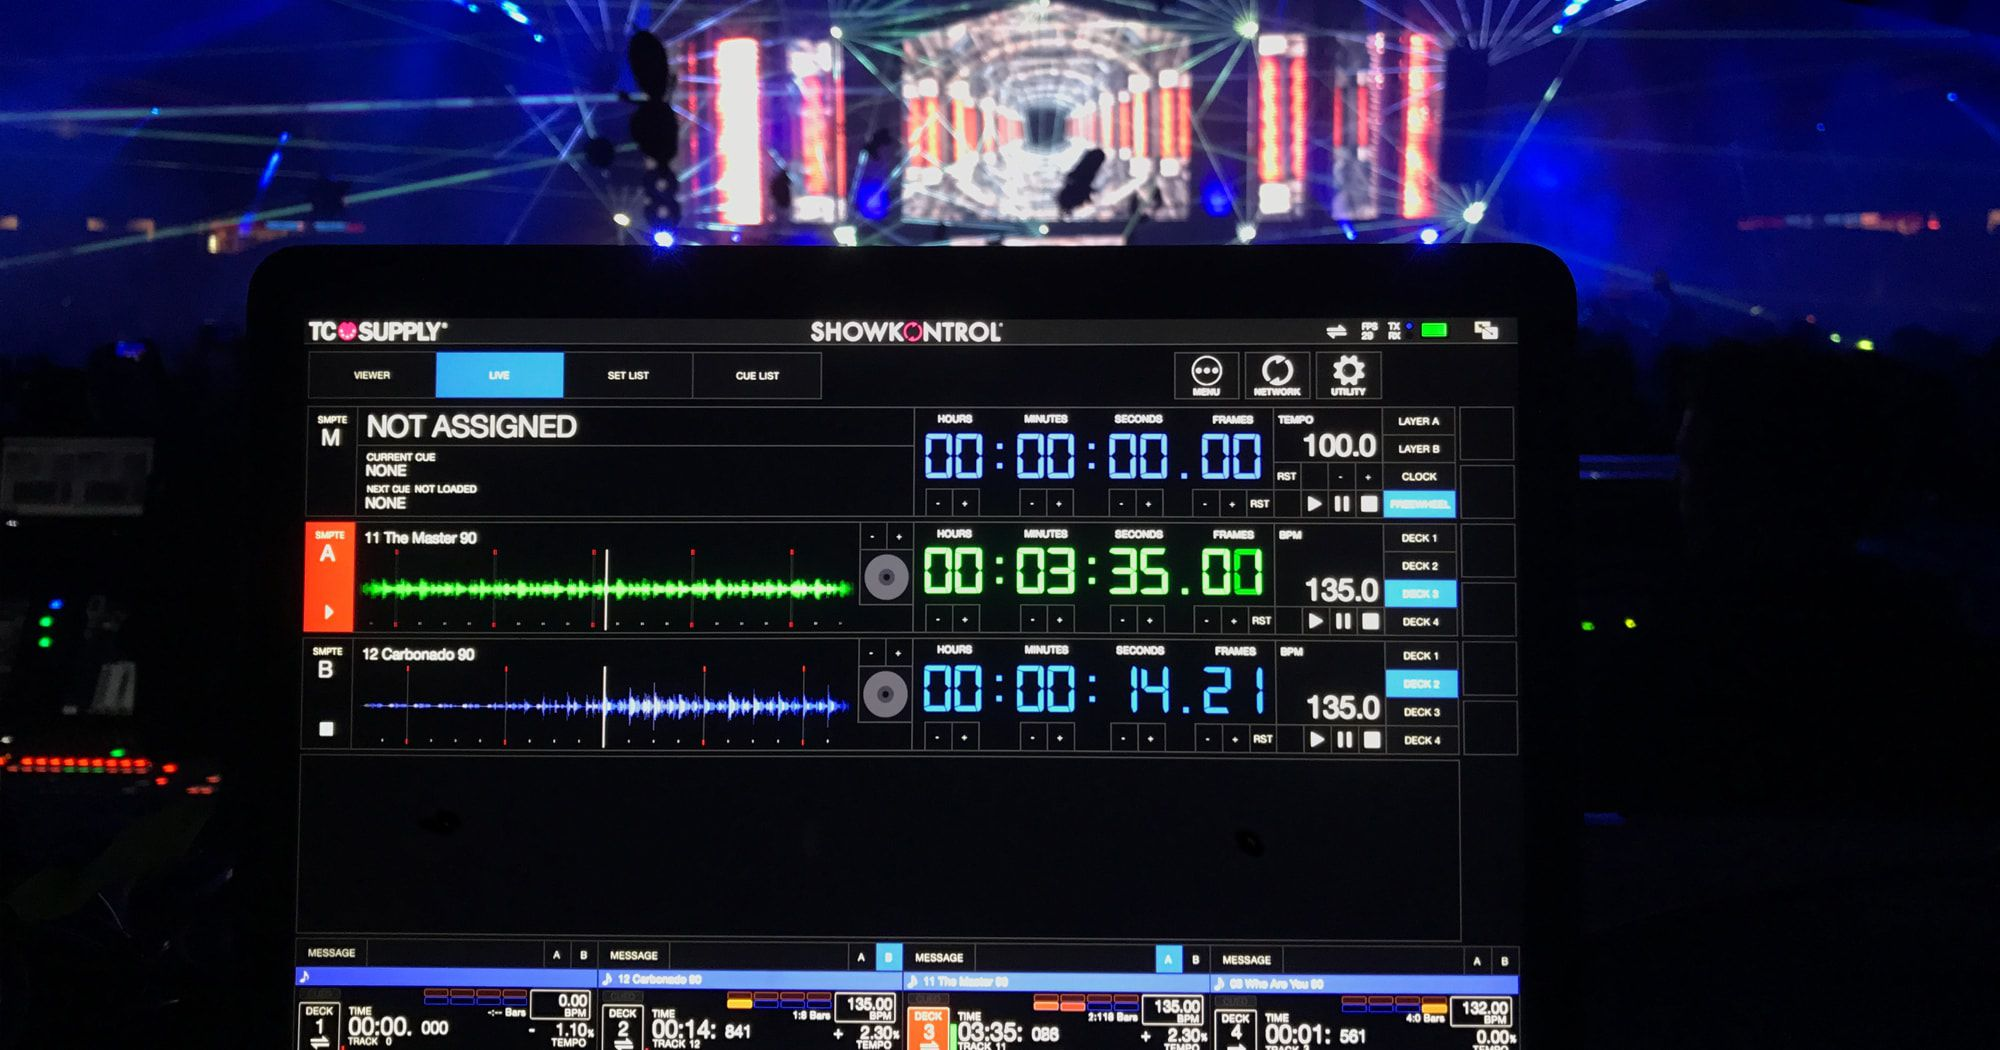 CDJs Will Send Track Data To Visuals/Lighting Techs With ShowKontrol